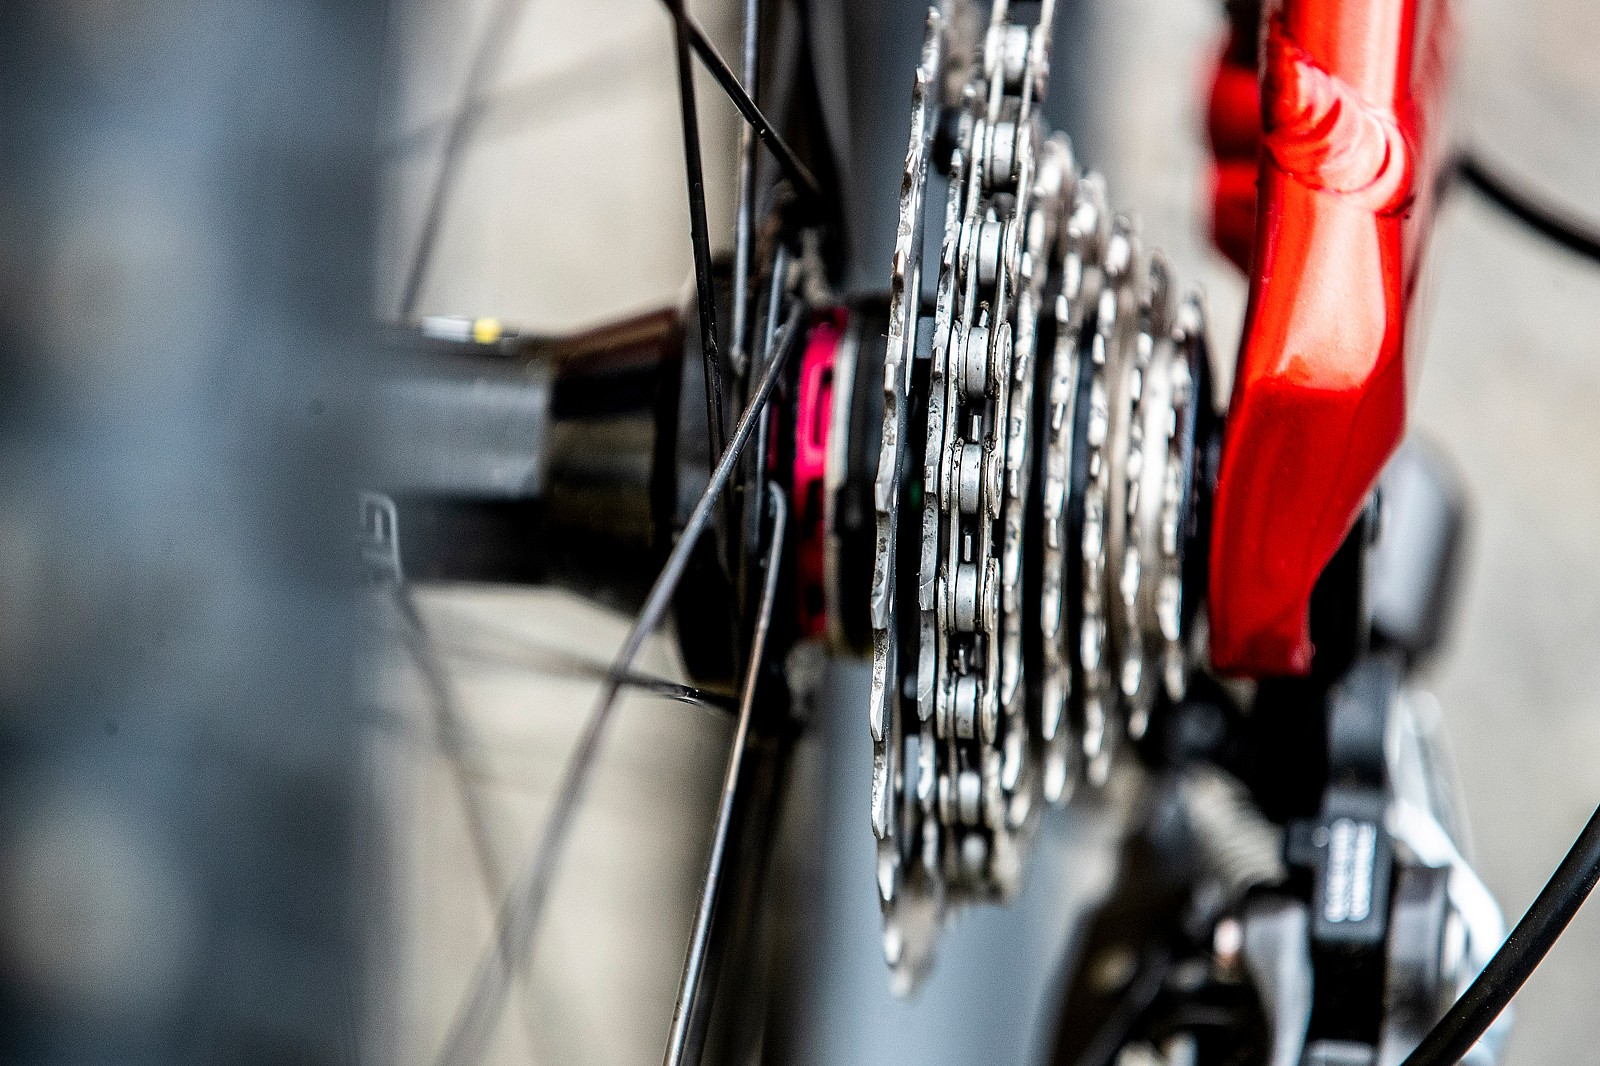 Shimano Cassette - GT Bicycles World Championships DH Race Bikes - Mountain Biking Pictures - Vital MTB